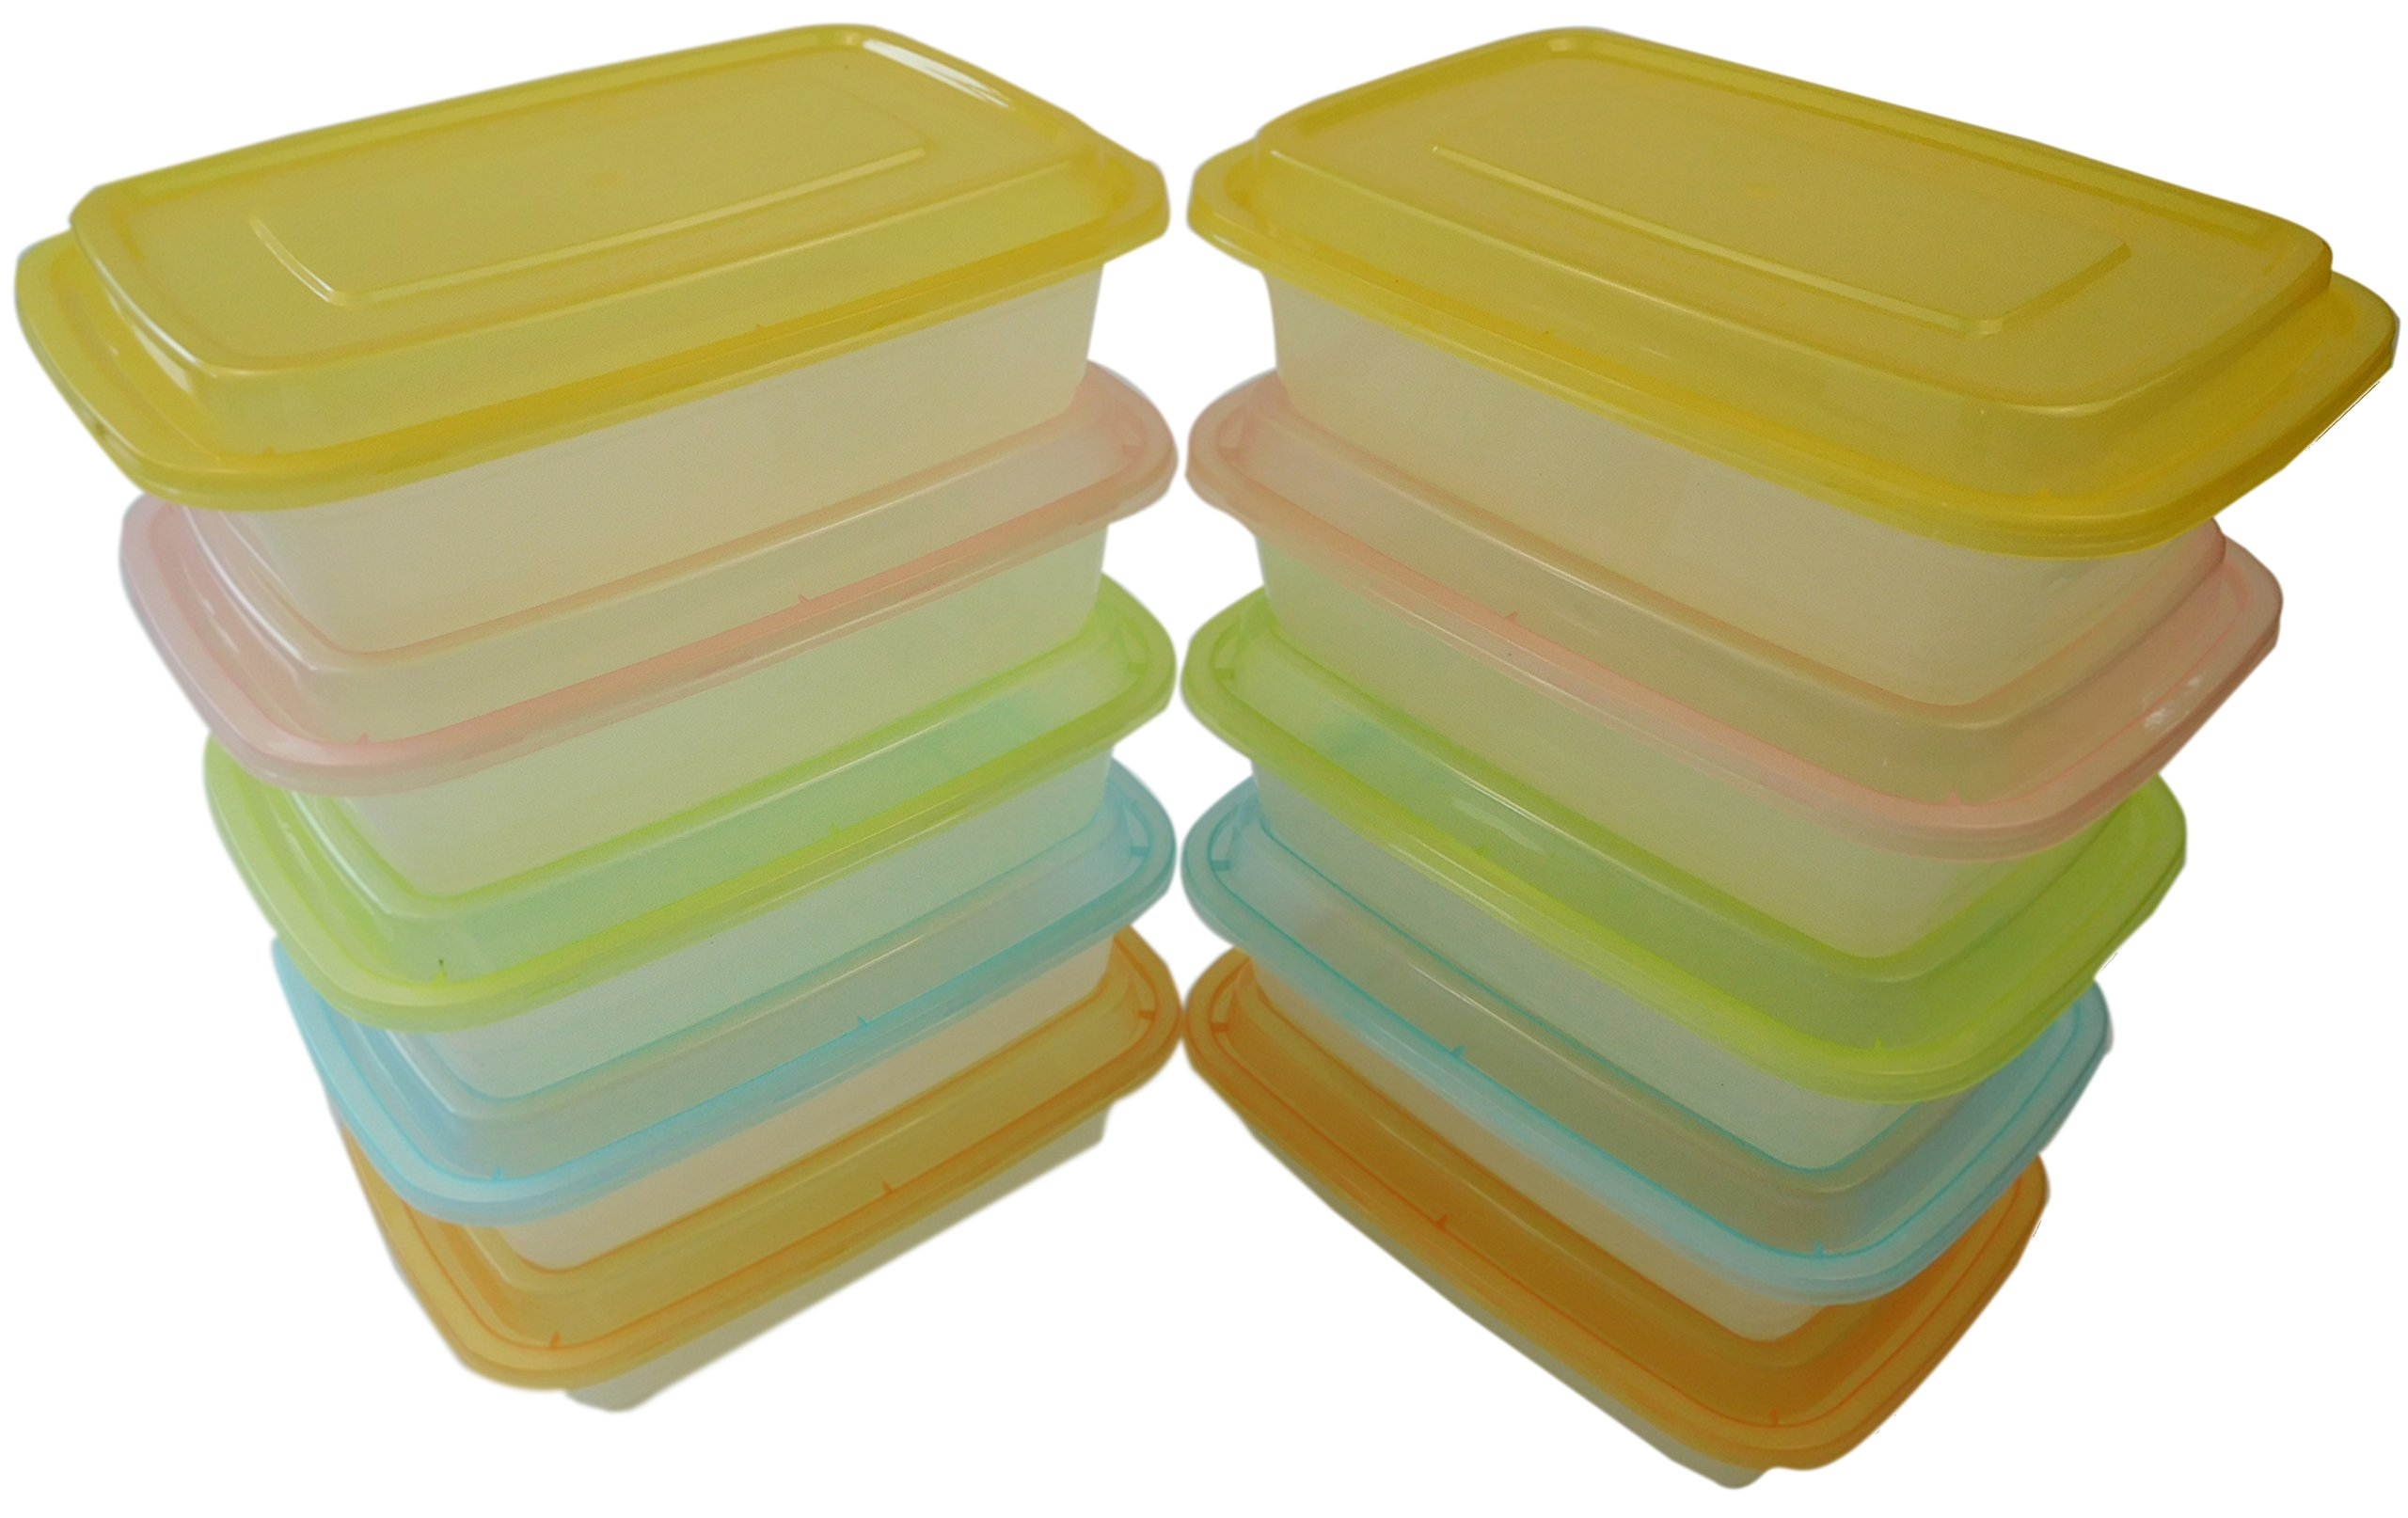 Table To Go 240-Pack Bento Lunch Boxes with Lids (1 Compartment/ 34 oz) (Multicolor Lids)